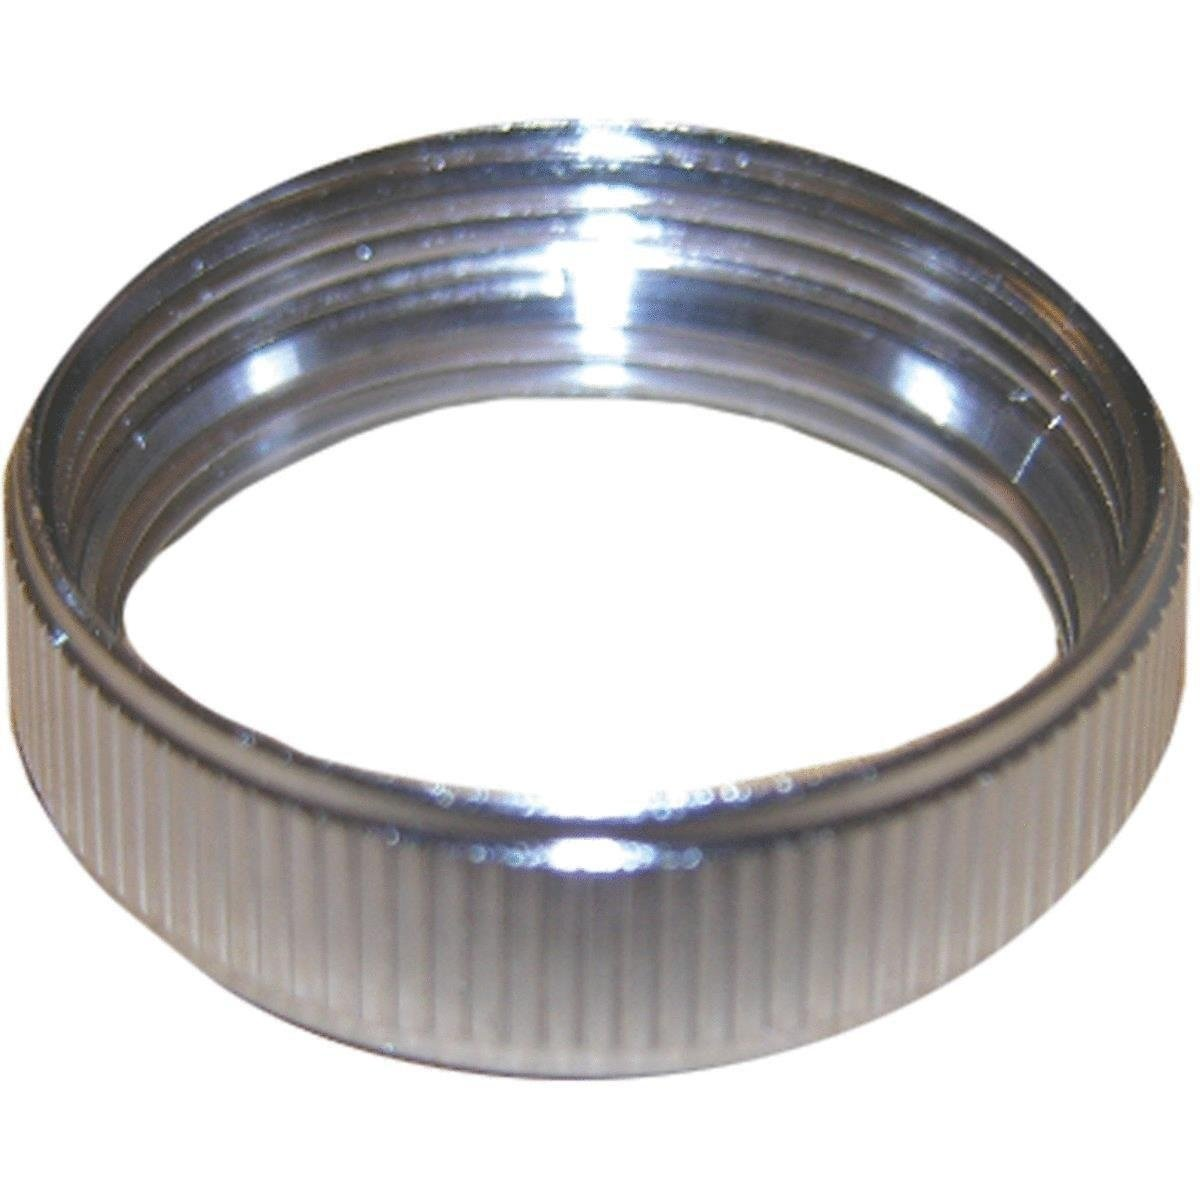 Male 15//16-27 Top Threads Neoperl 15 3360 5 Faucet Adapter Male 55//64-27 Bottom Threads Solid Brass Chrome Finish